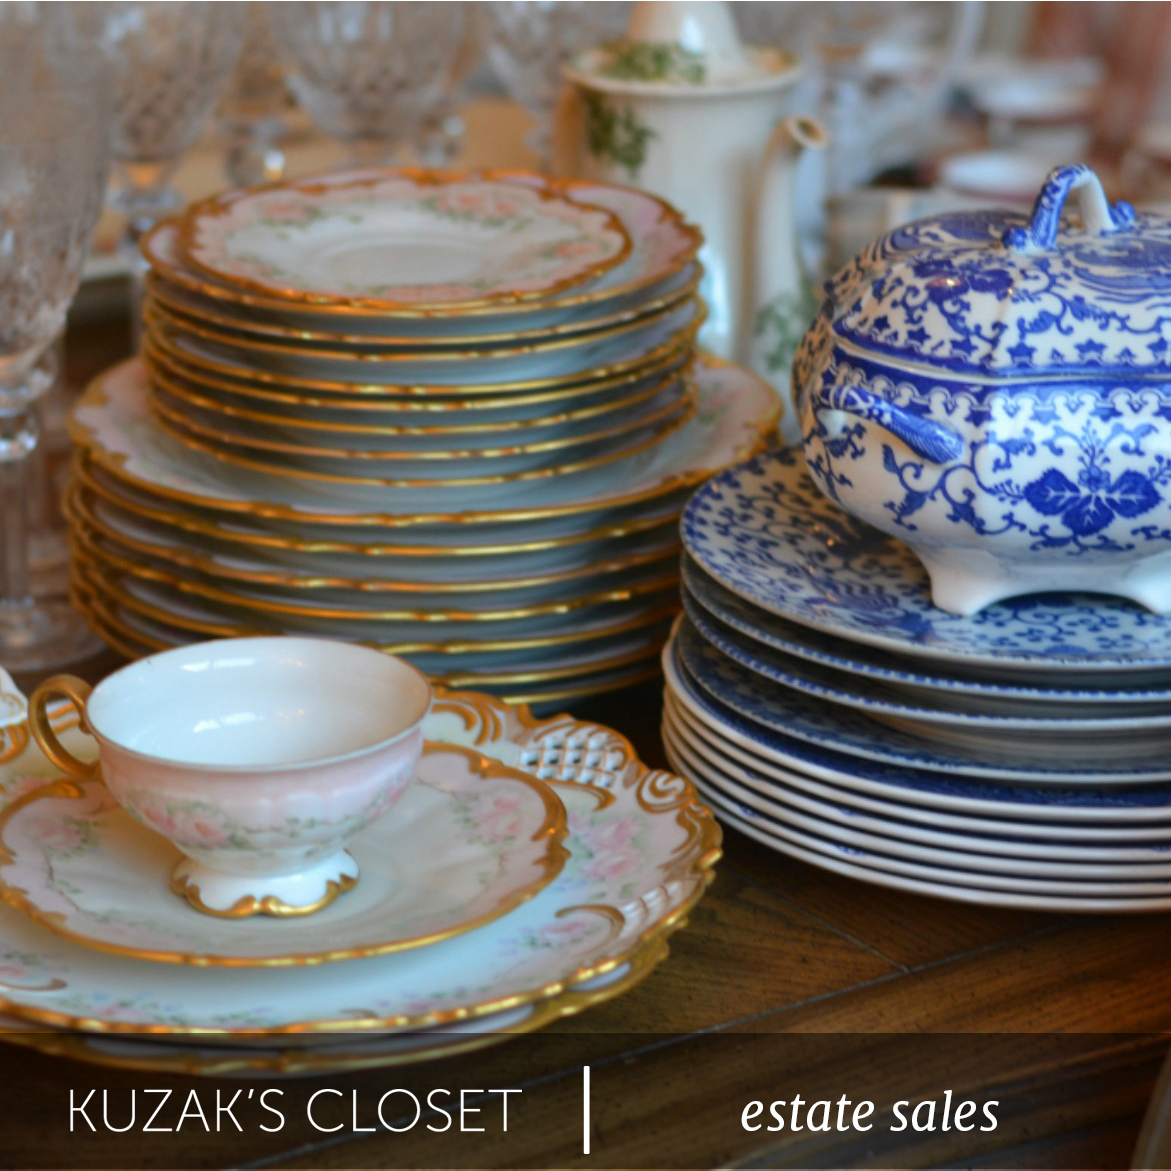 Kuzak's Closet Silicon Valley Estate Sales and Estate Liquidations